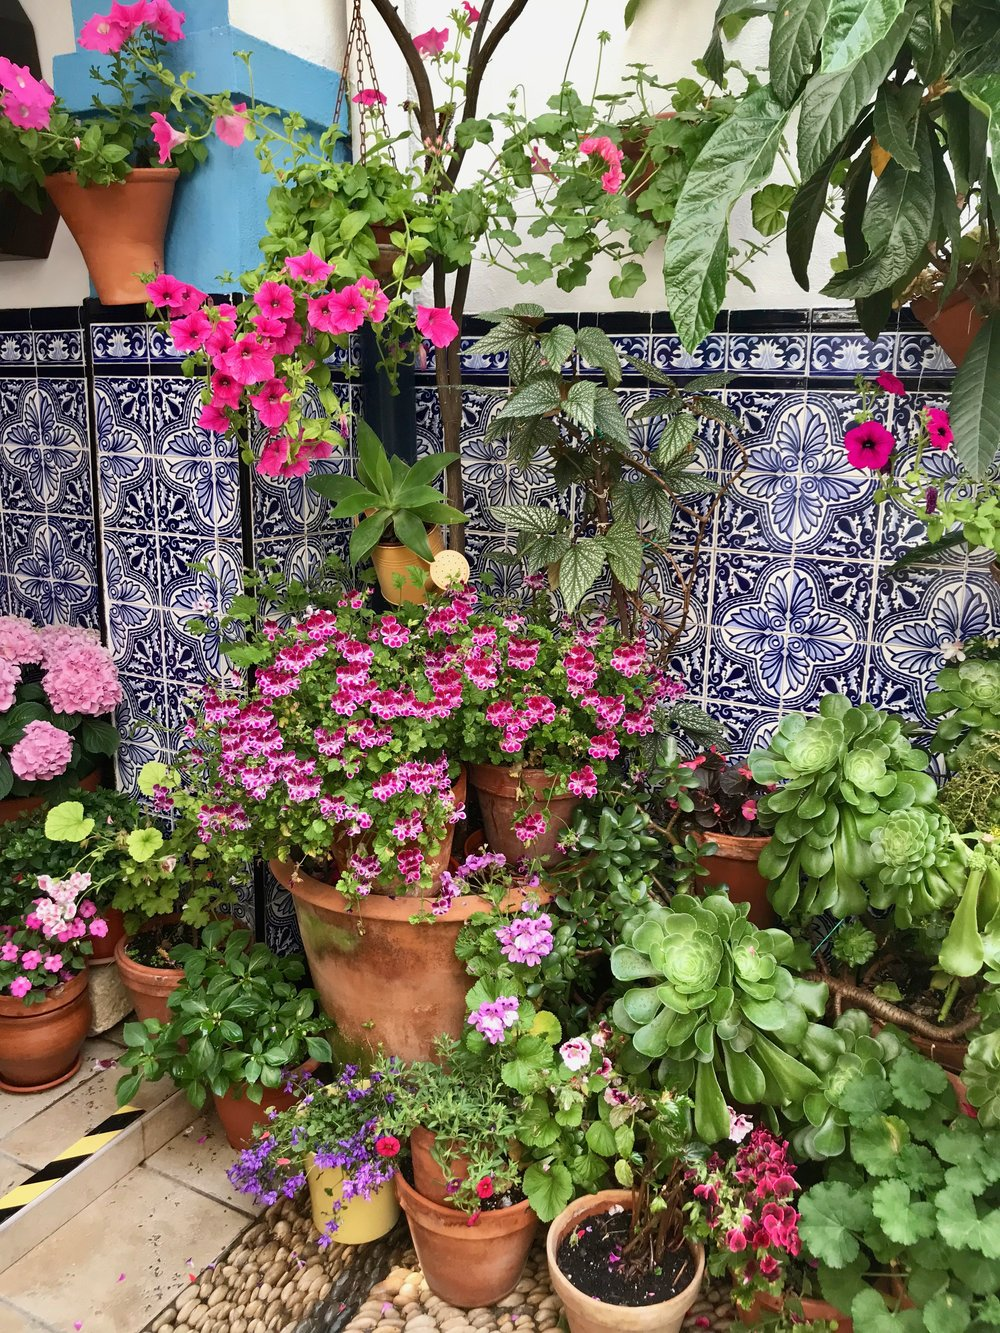 Tiles + flowers = the two ingredients for a classic patio.